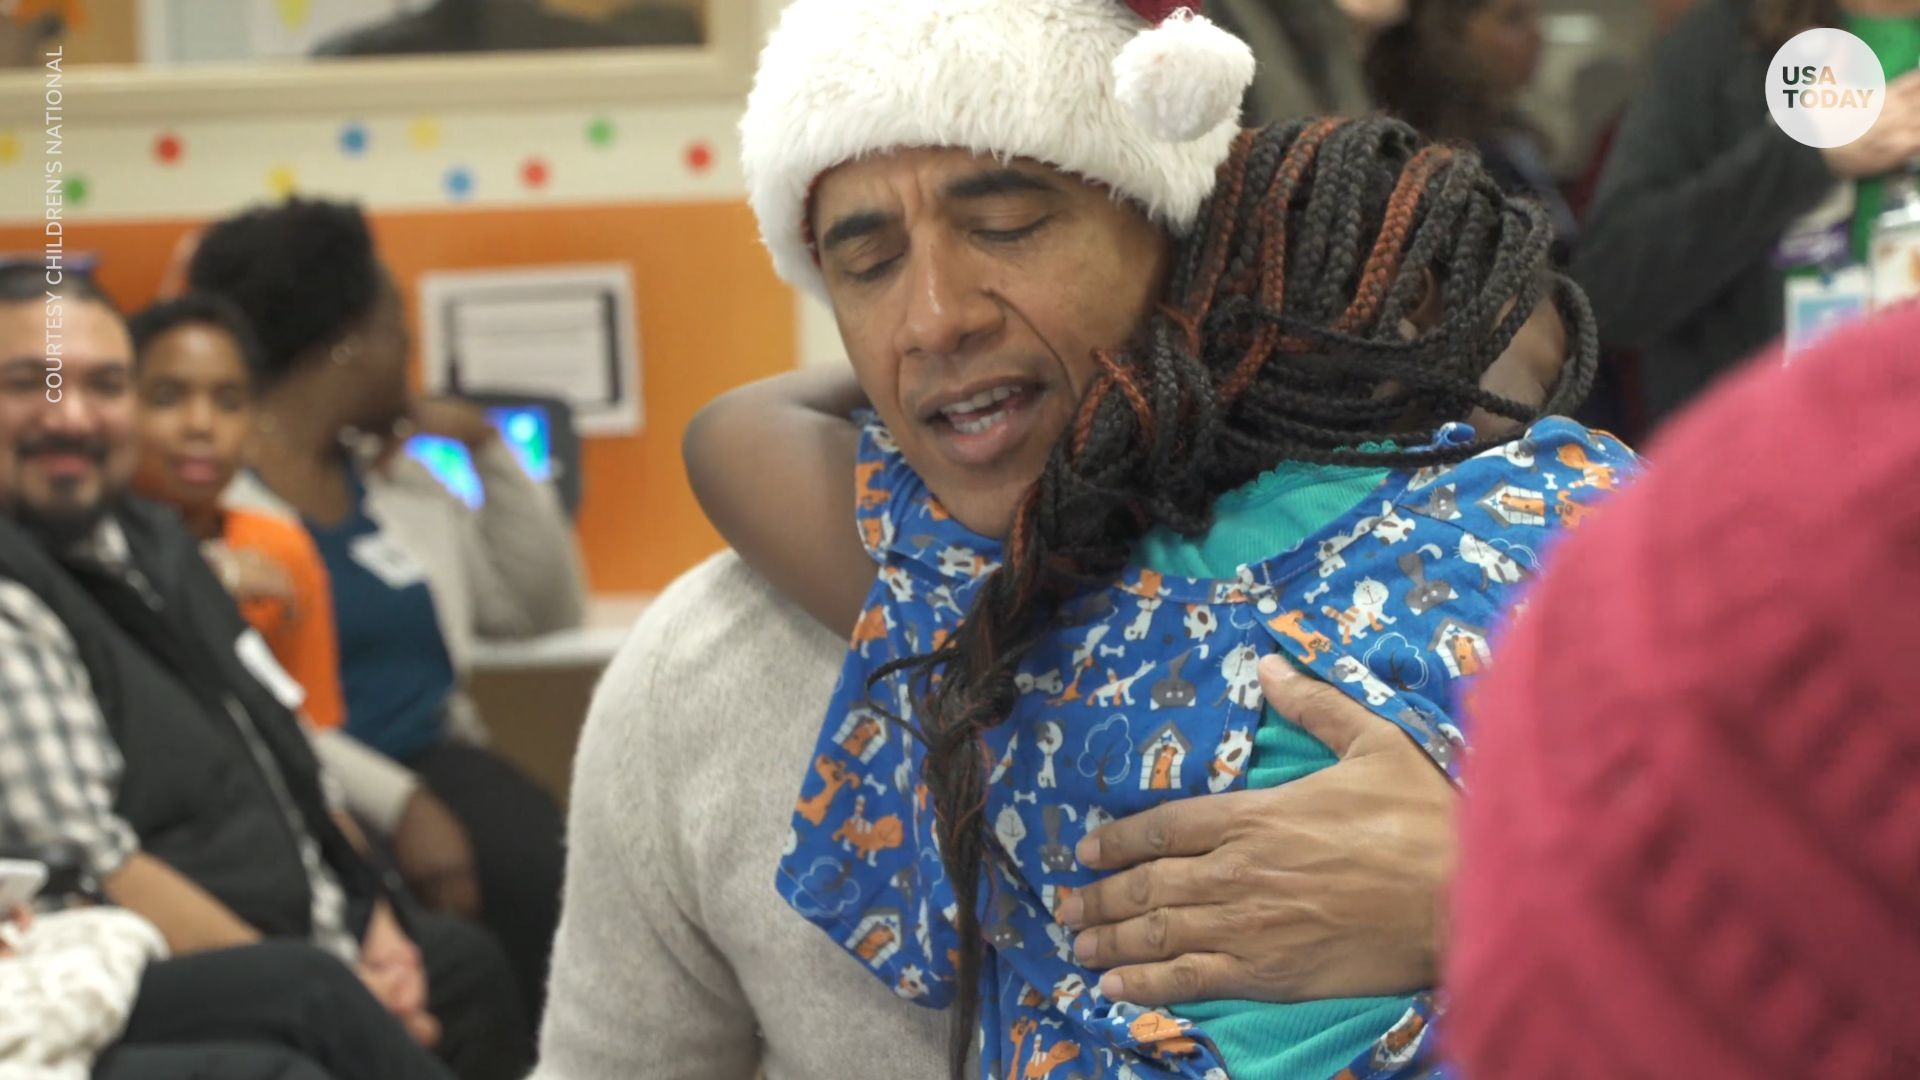 1920x1080 Former President Obama surprises children at DC hospital